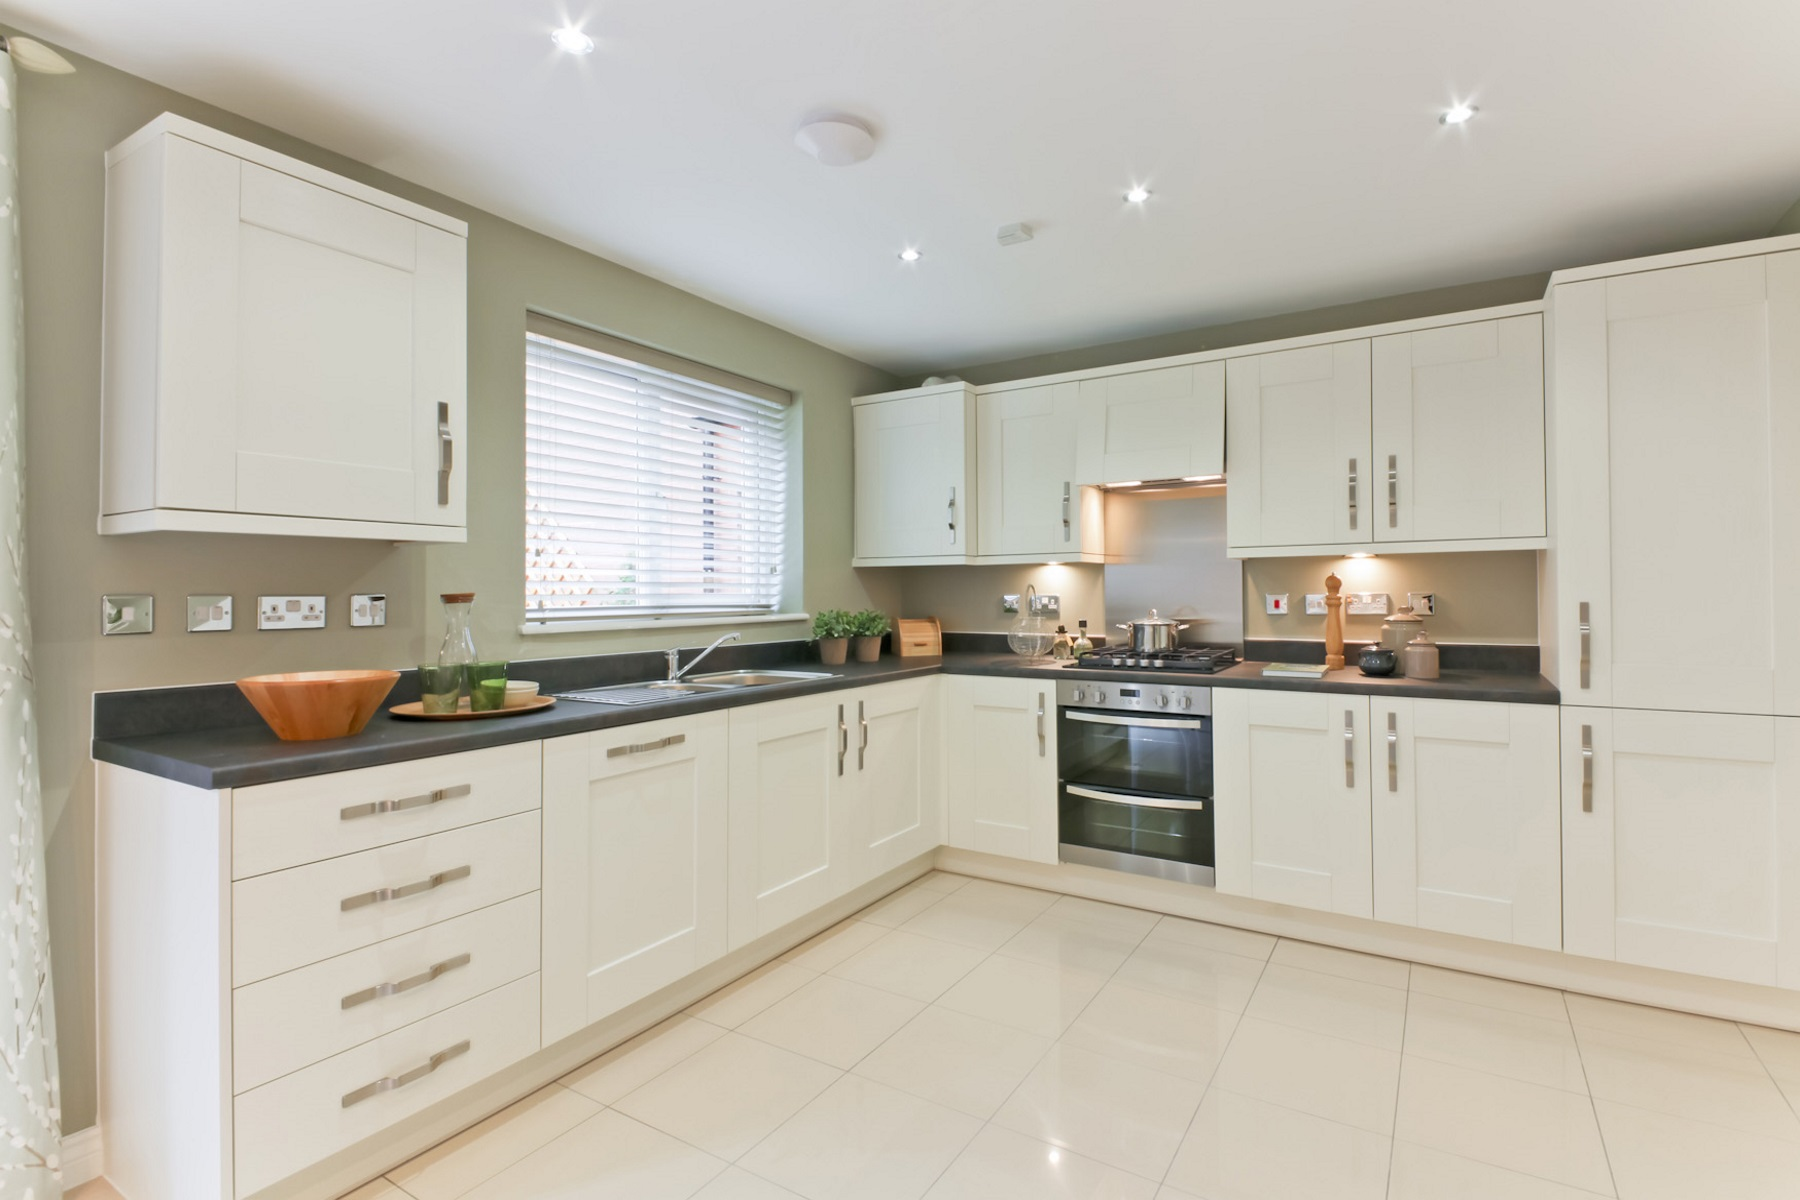 TW Exeter - Mayfield Gardens - Huxford example kitchen1